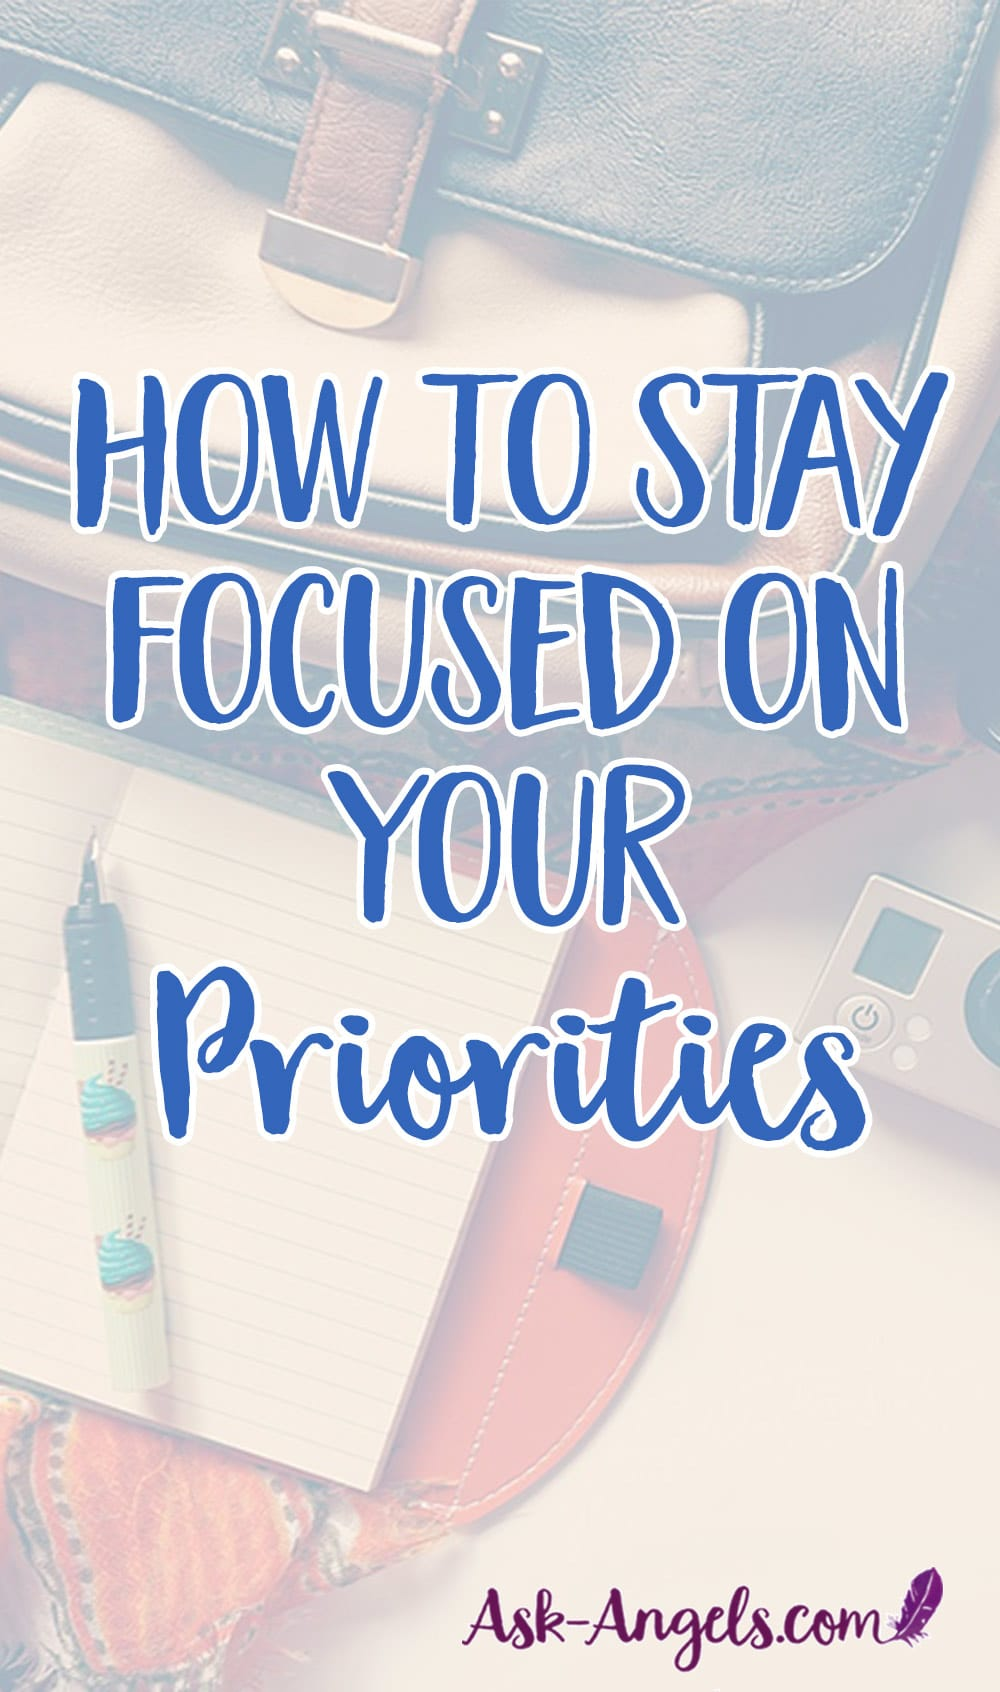 Stay Focused on Your Priorities